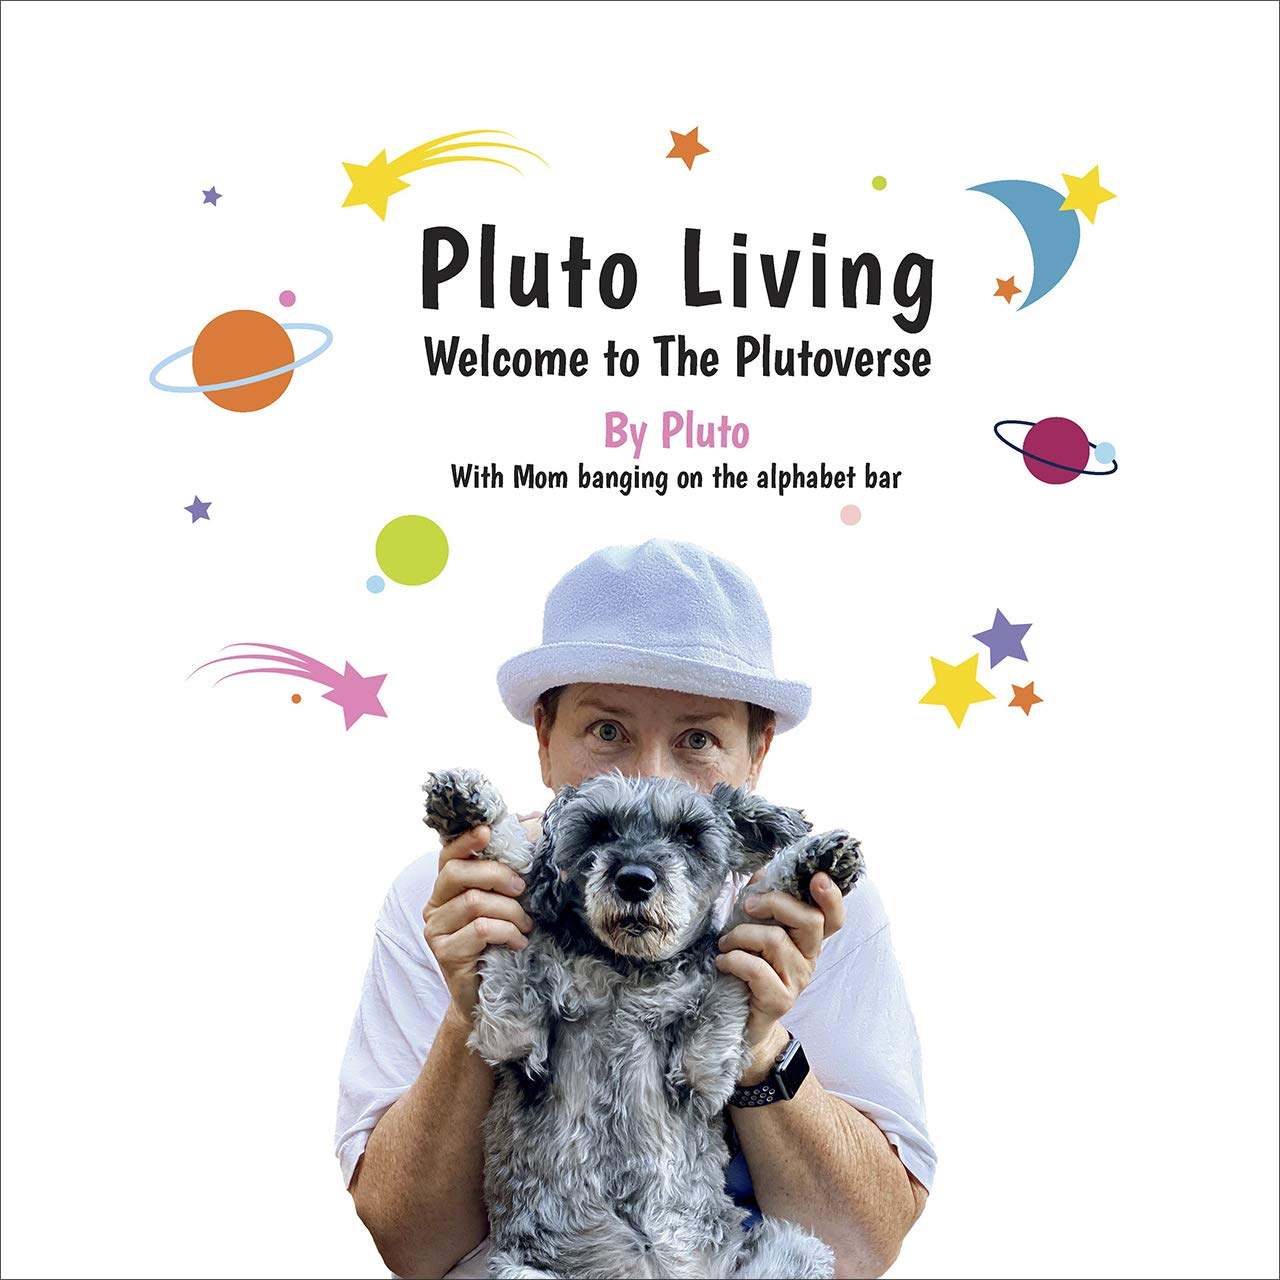 Pluto Living: Welcome to the Plutoverse